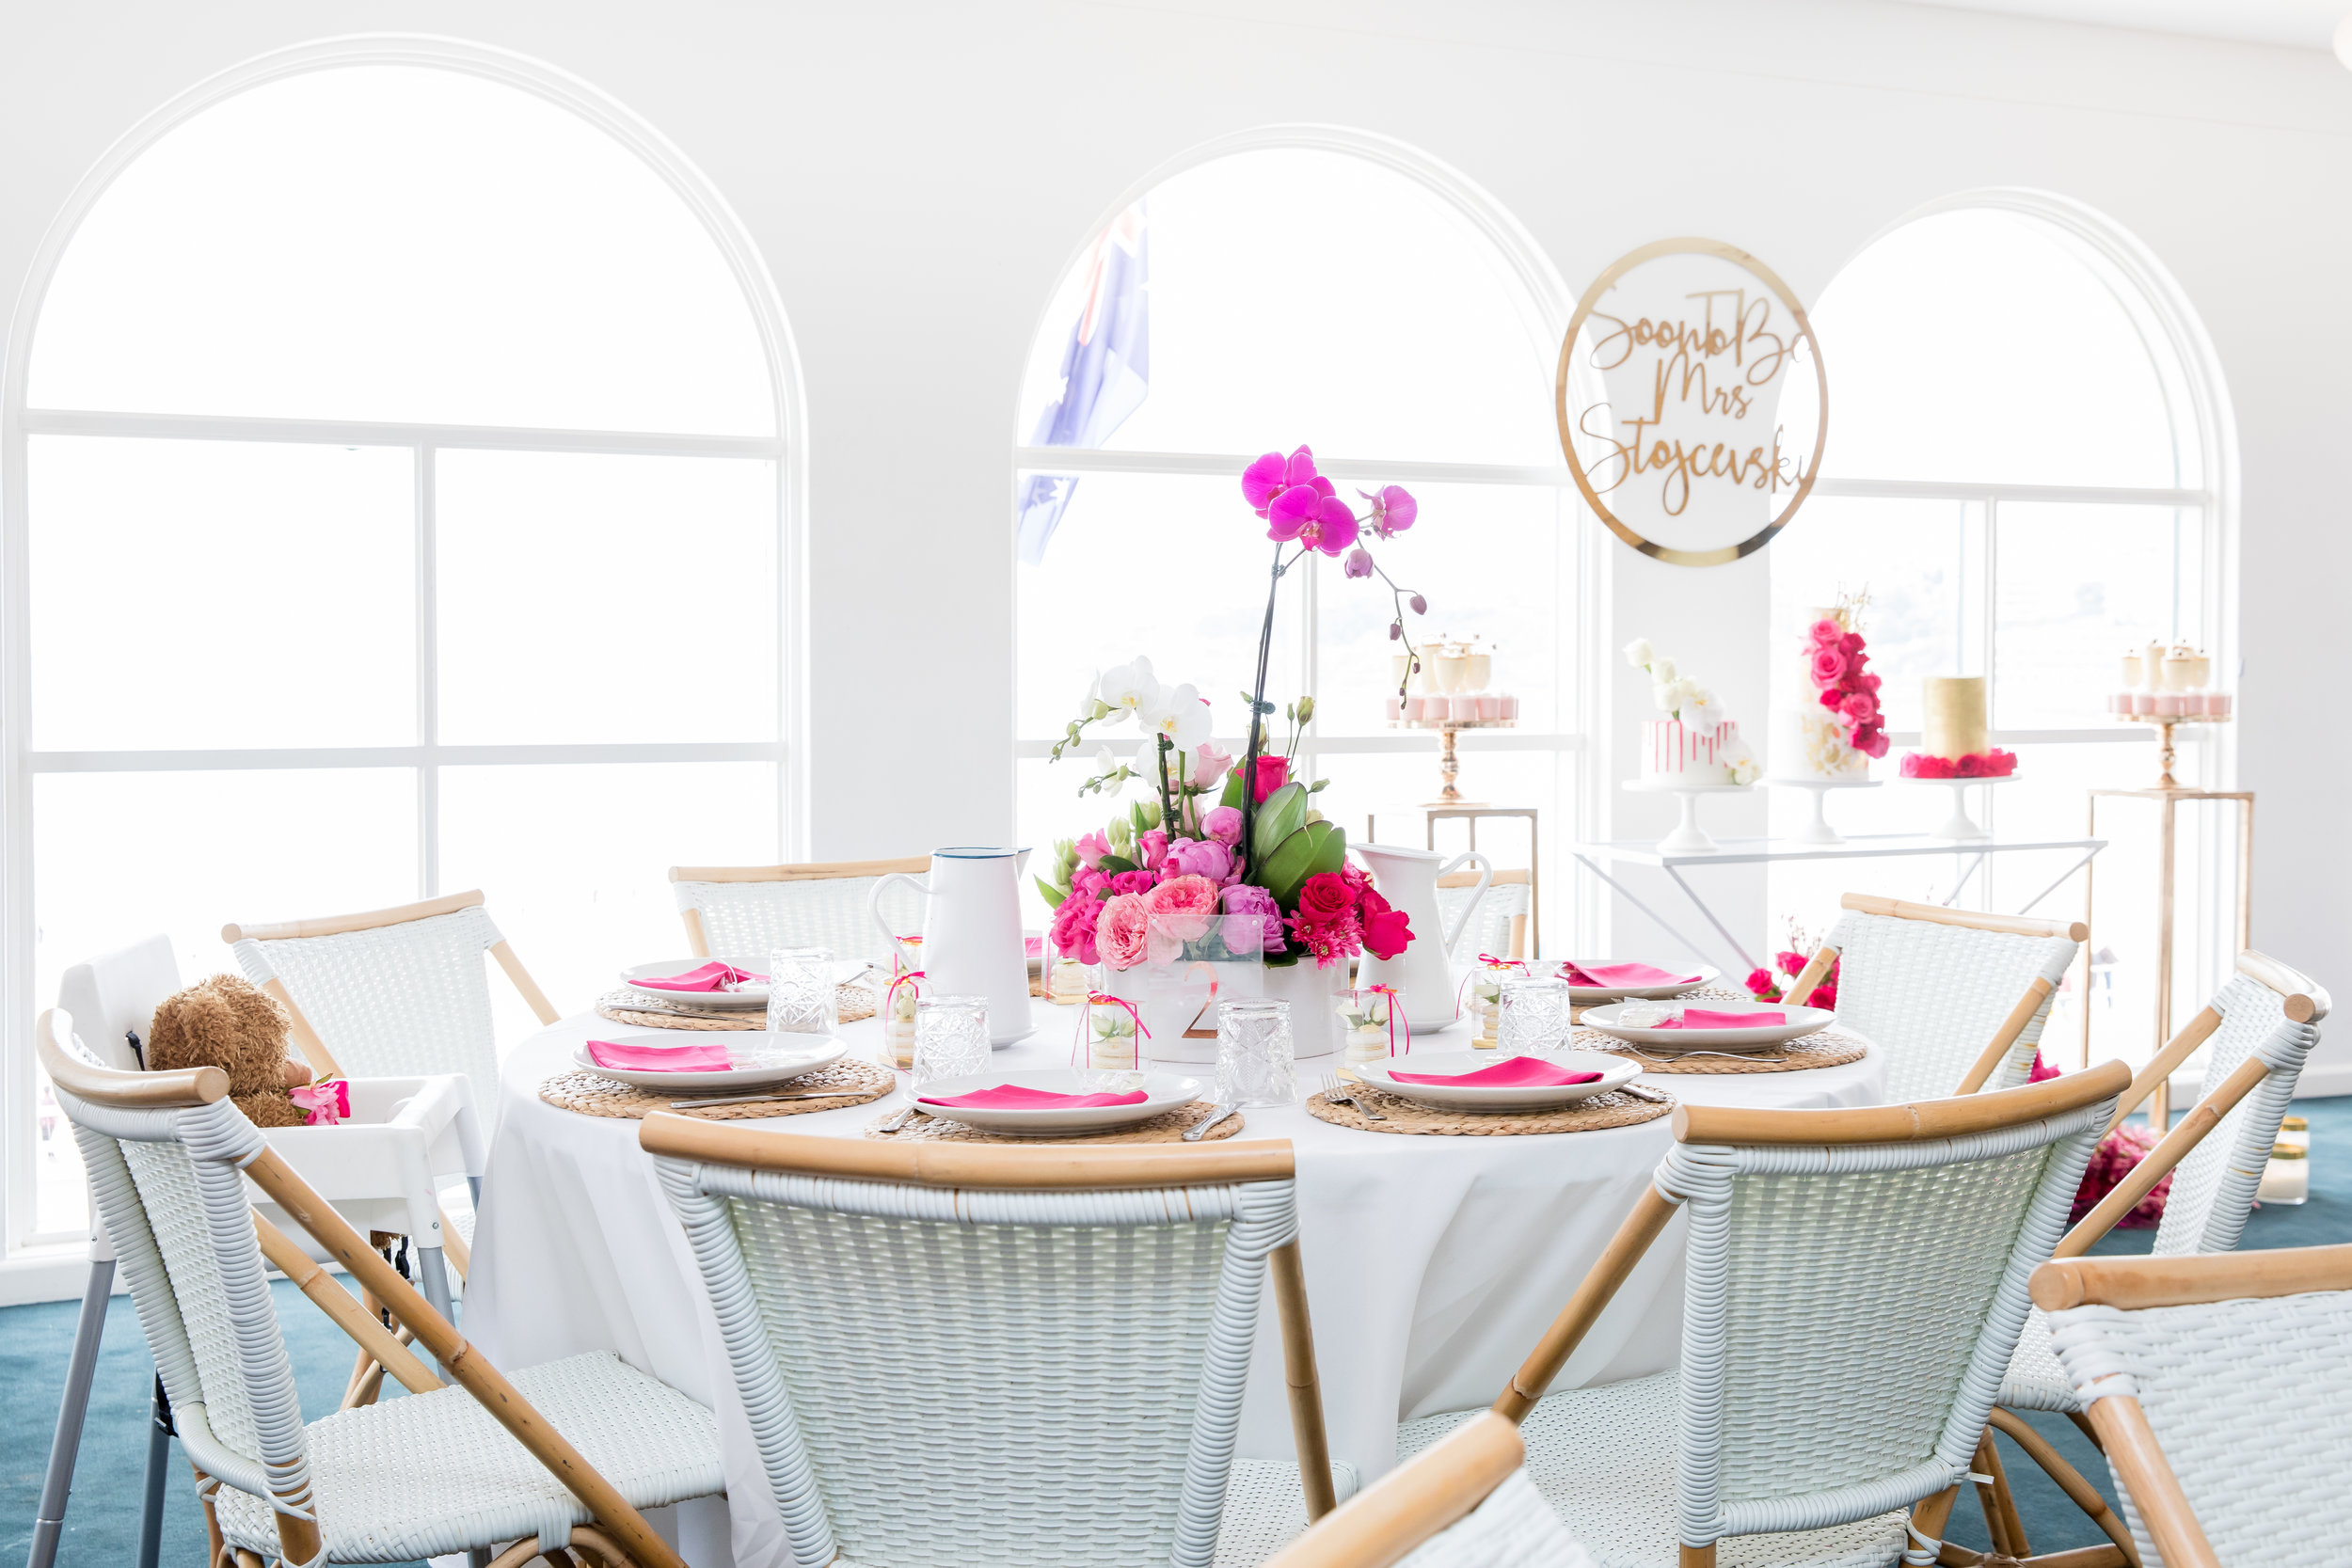 kitchen_tea_styling_white_pink_styling_floral_centrepiece_blue_room_bondi_events_by_nadia_4.jpg